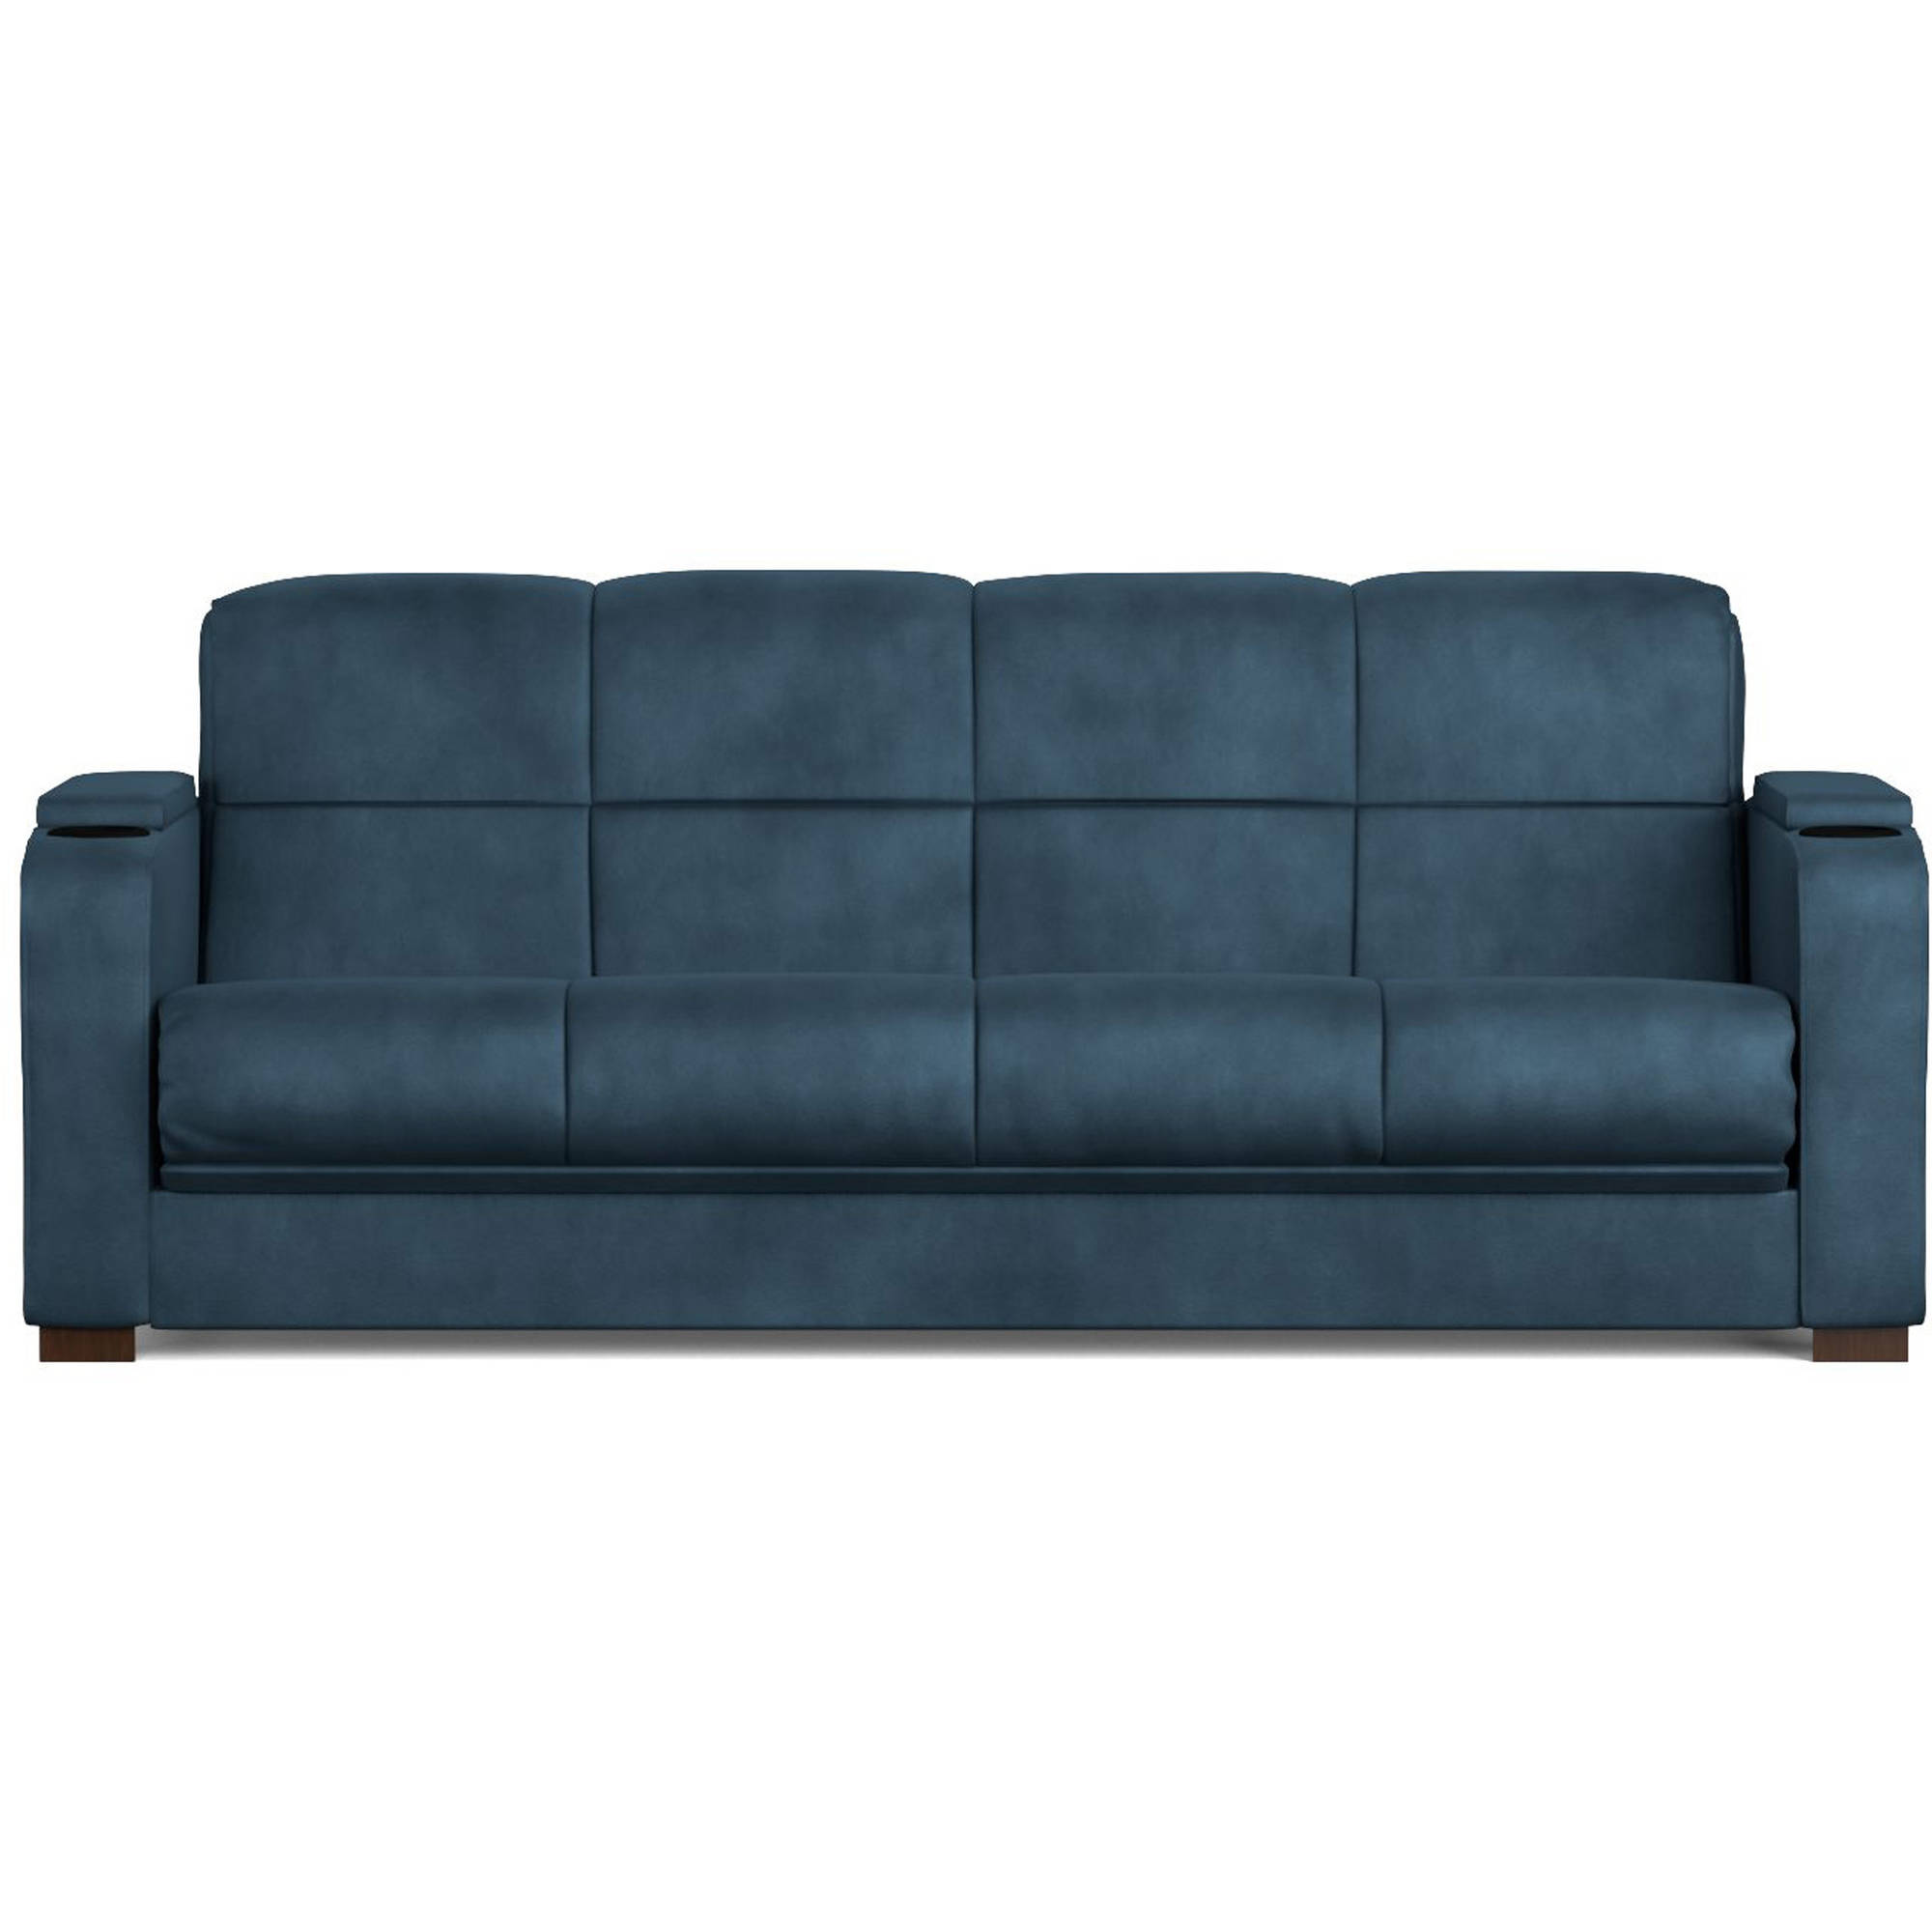 sofa walmart multiple home beautiful split colors ideas delaney futon couch sleeper with decorating back bed cool